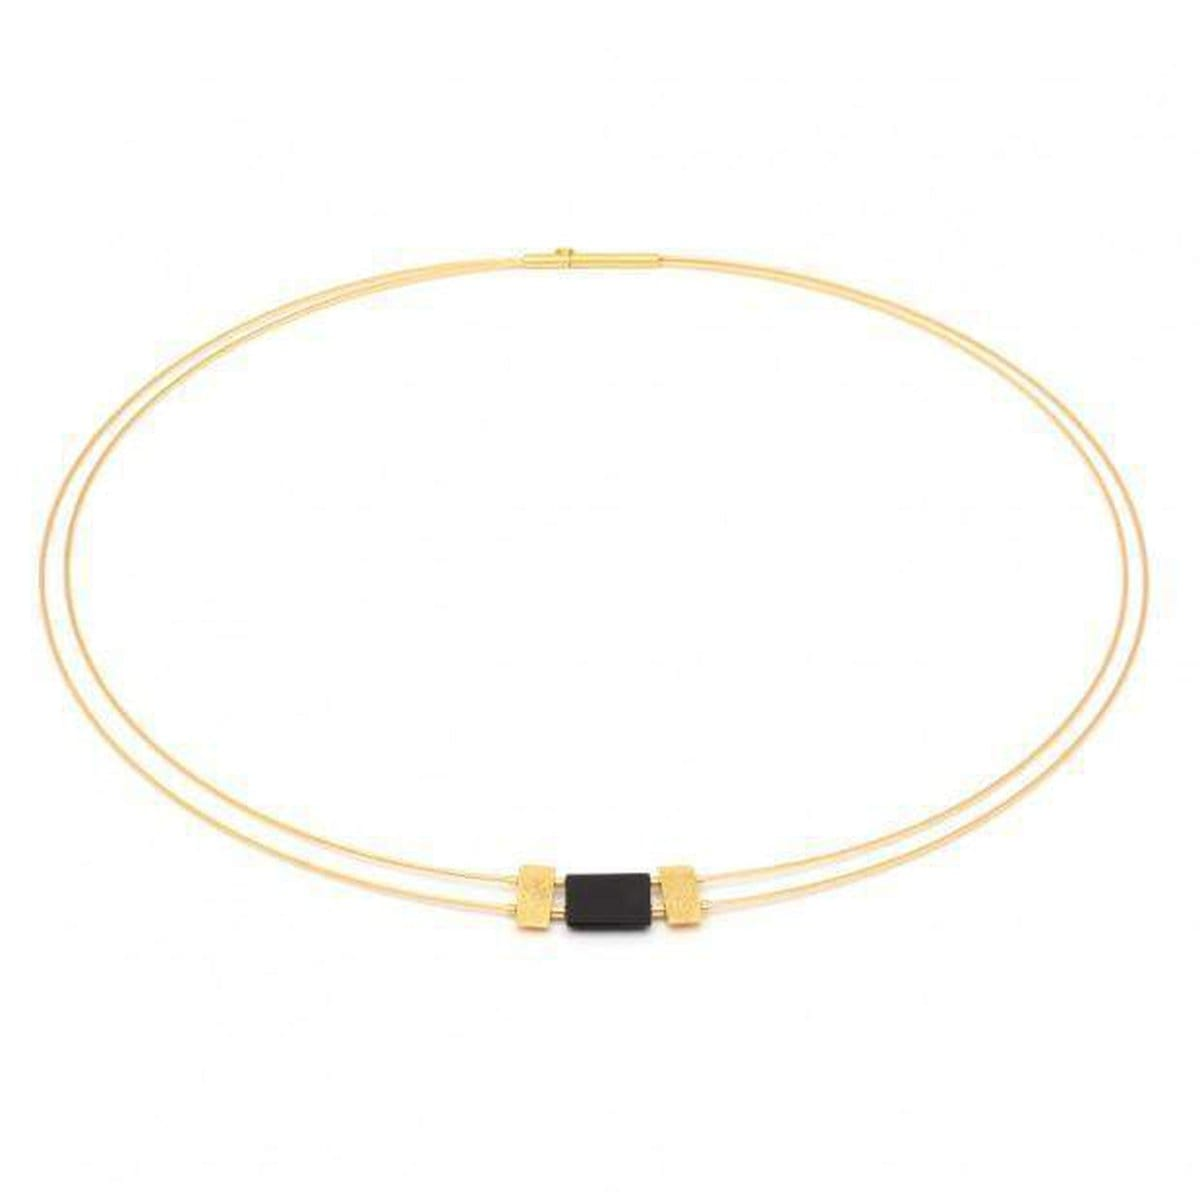 Sena Onyx Necklace - 85199896